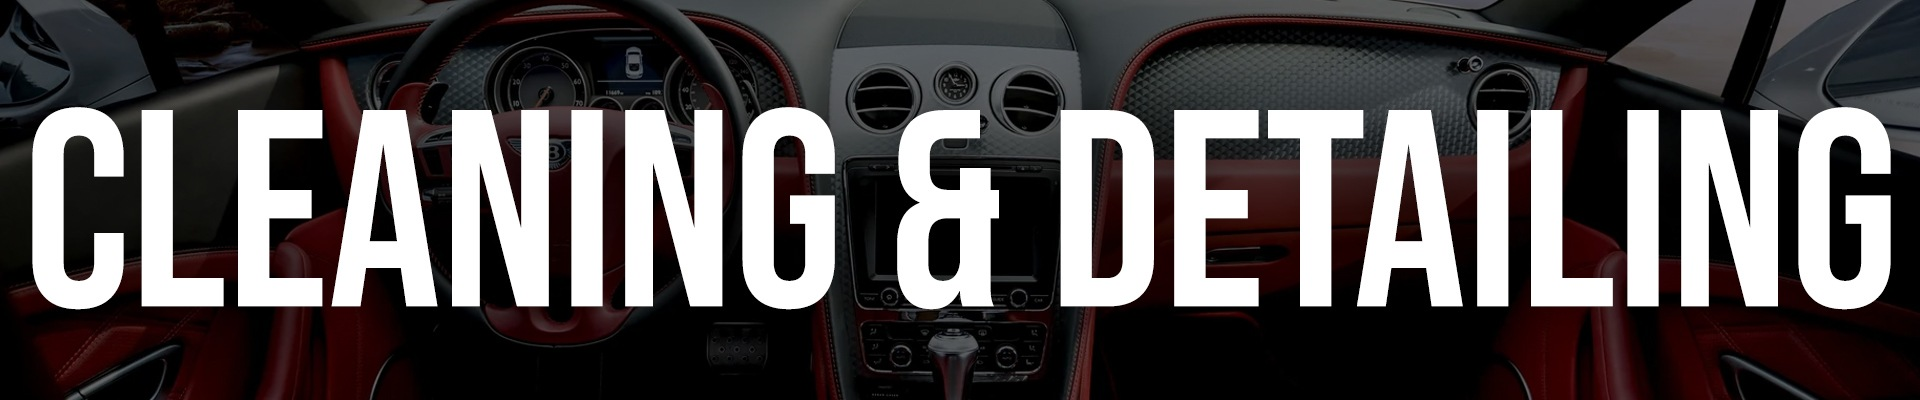 Cleaning & Detailing Banner